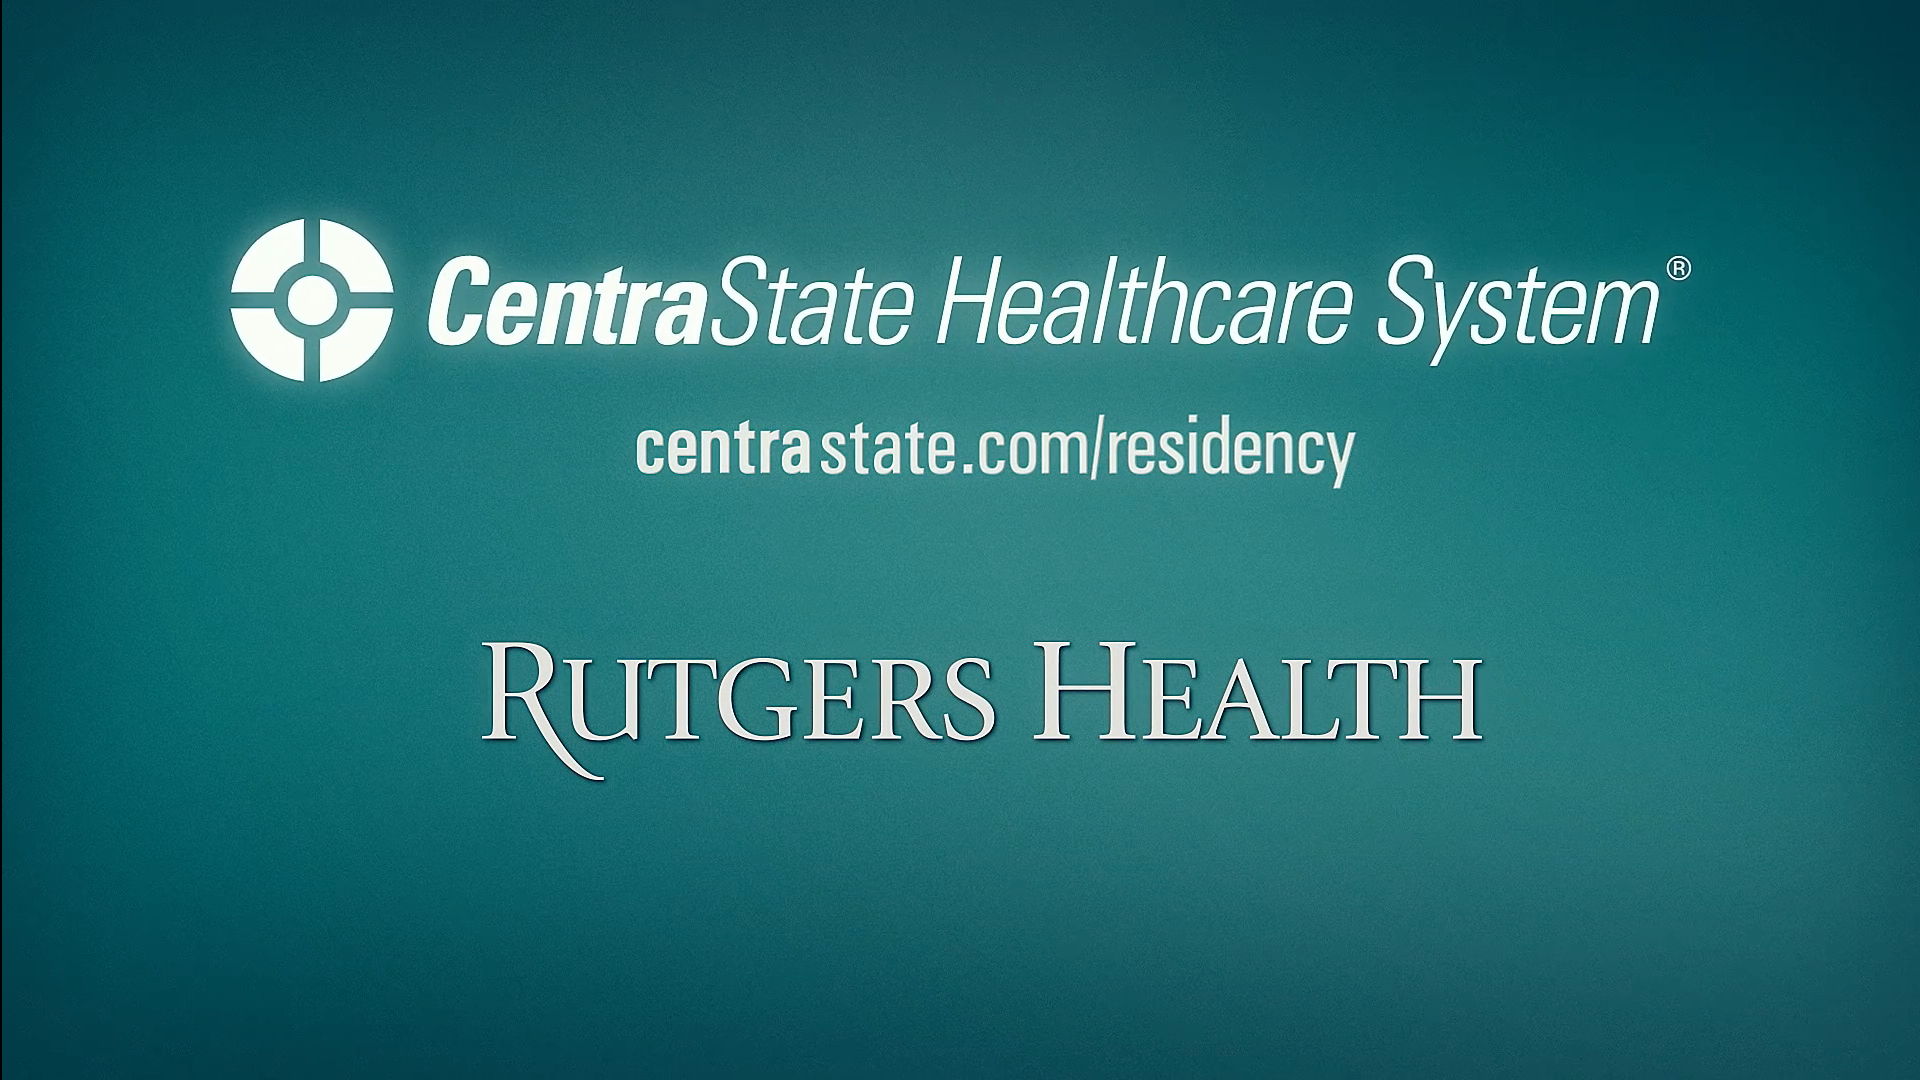 Pulse Productions Inc creates a Video Recruiting Tool for a local hospital system